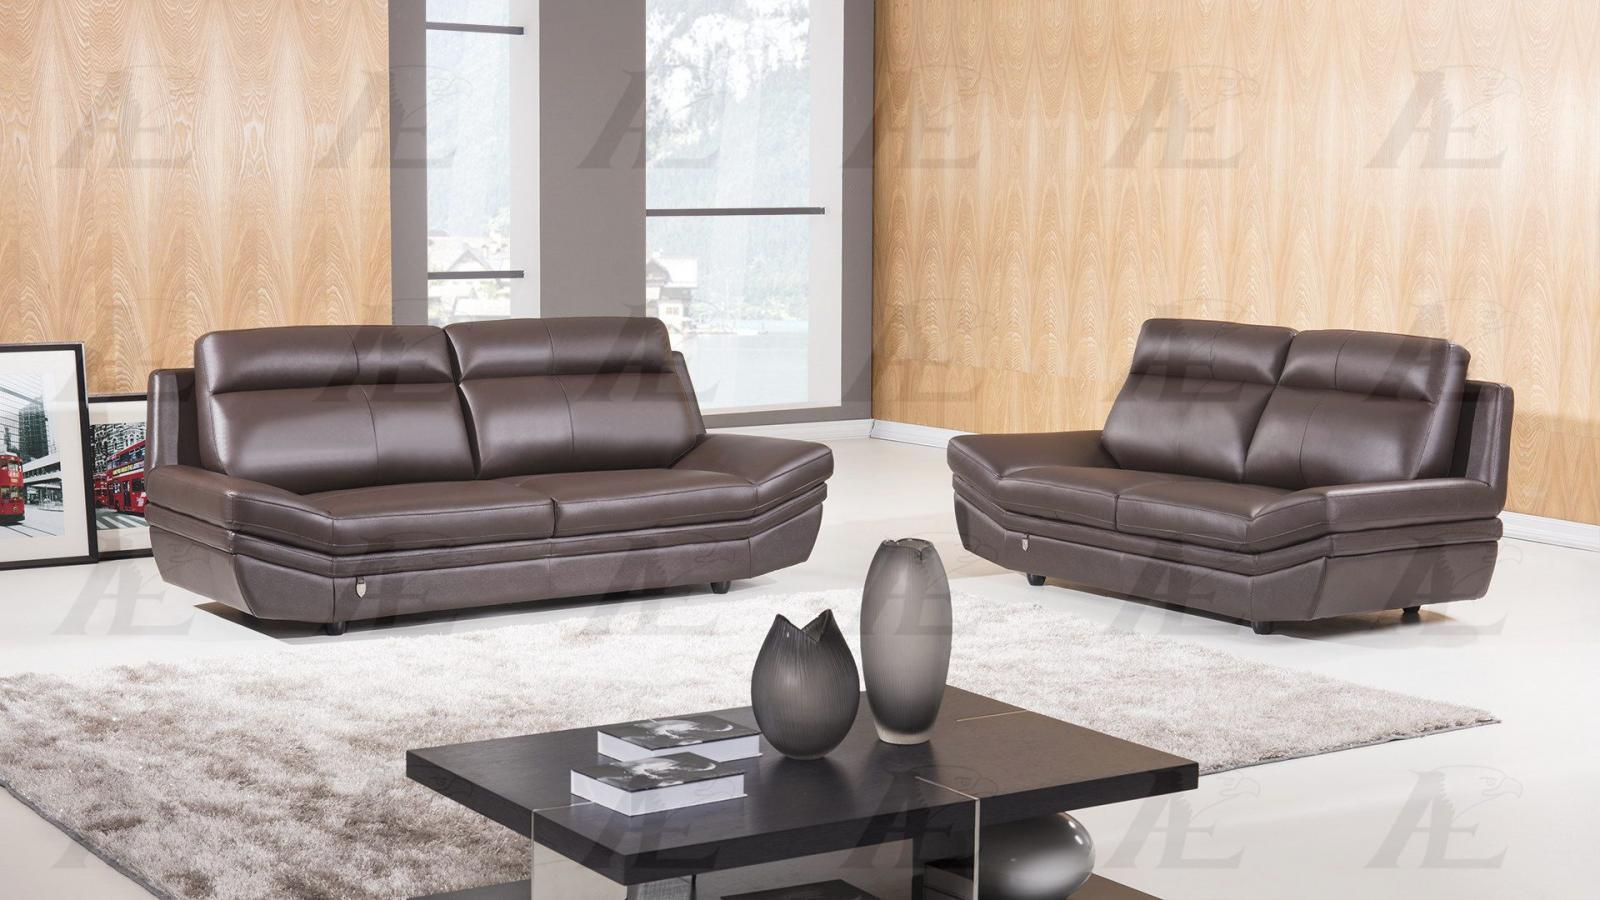 American Eagle EK075 Contemporary Dark Chocolate Italian Leather Sofa Set 2pcs